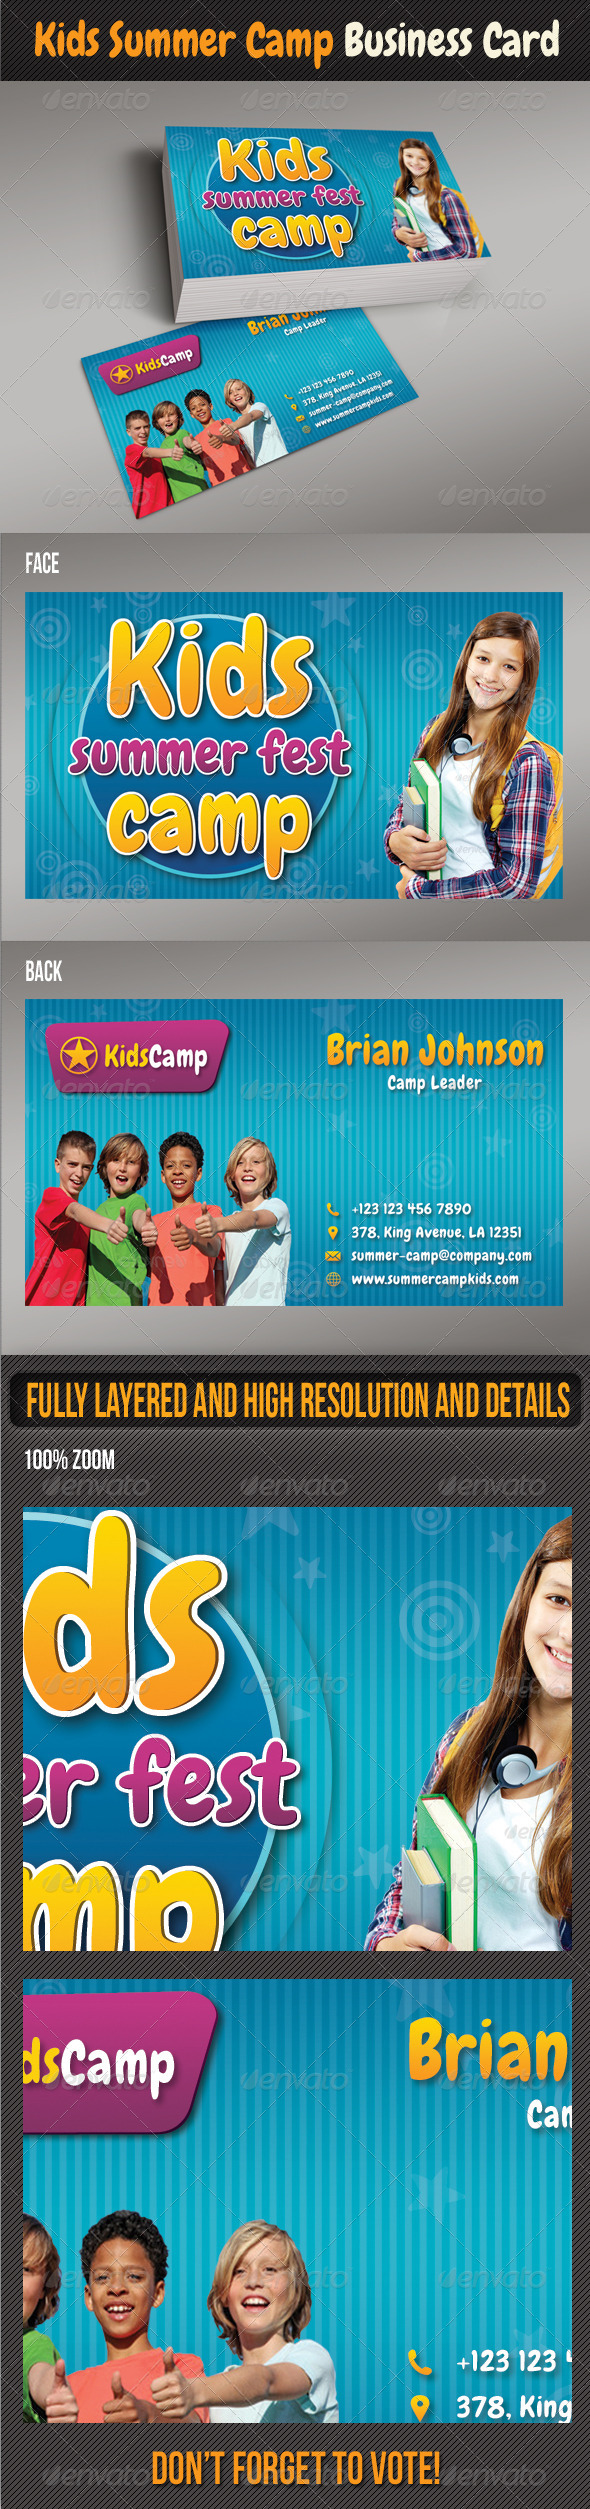 GraphicRiver Kids Summer Camp Business Card 8050266